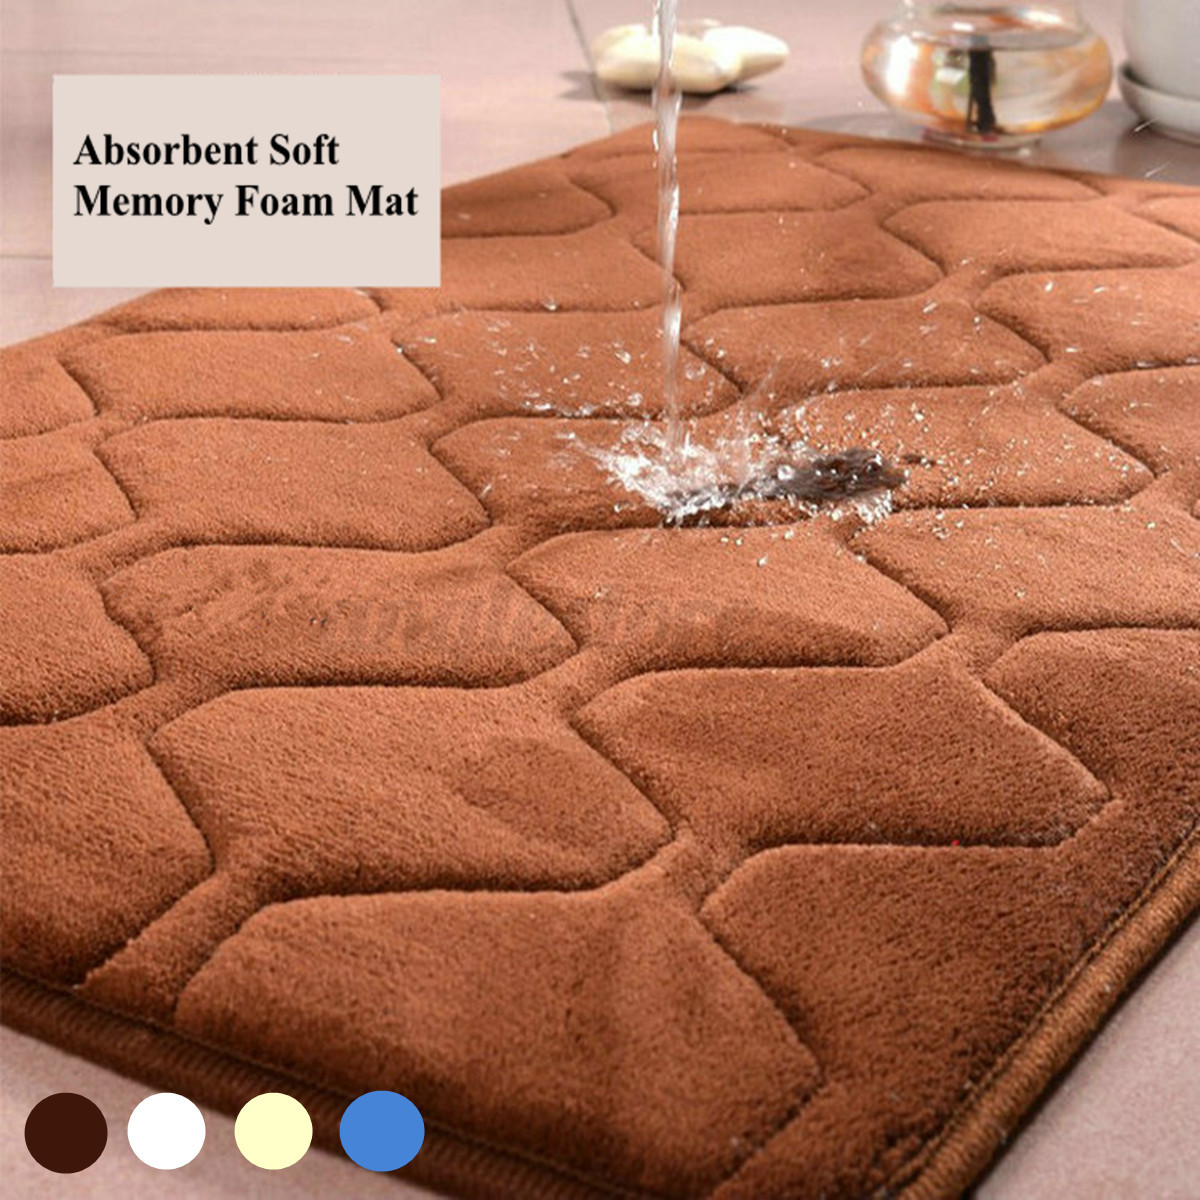 Carpet In A Bathroom: Memory Foam Mat Bath Bathroom Rug Shower Non-slip Carpet